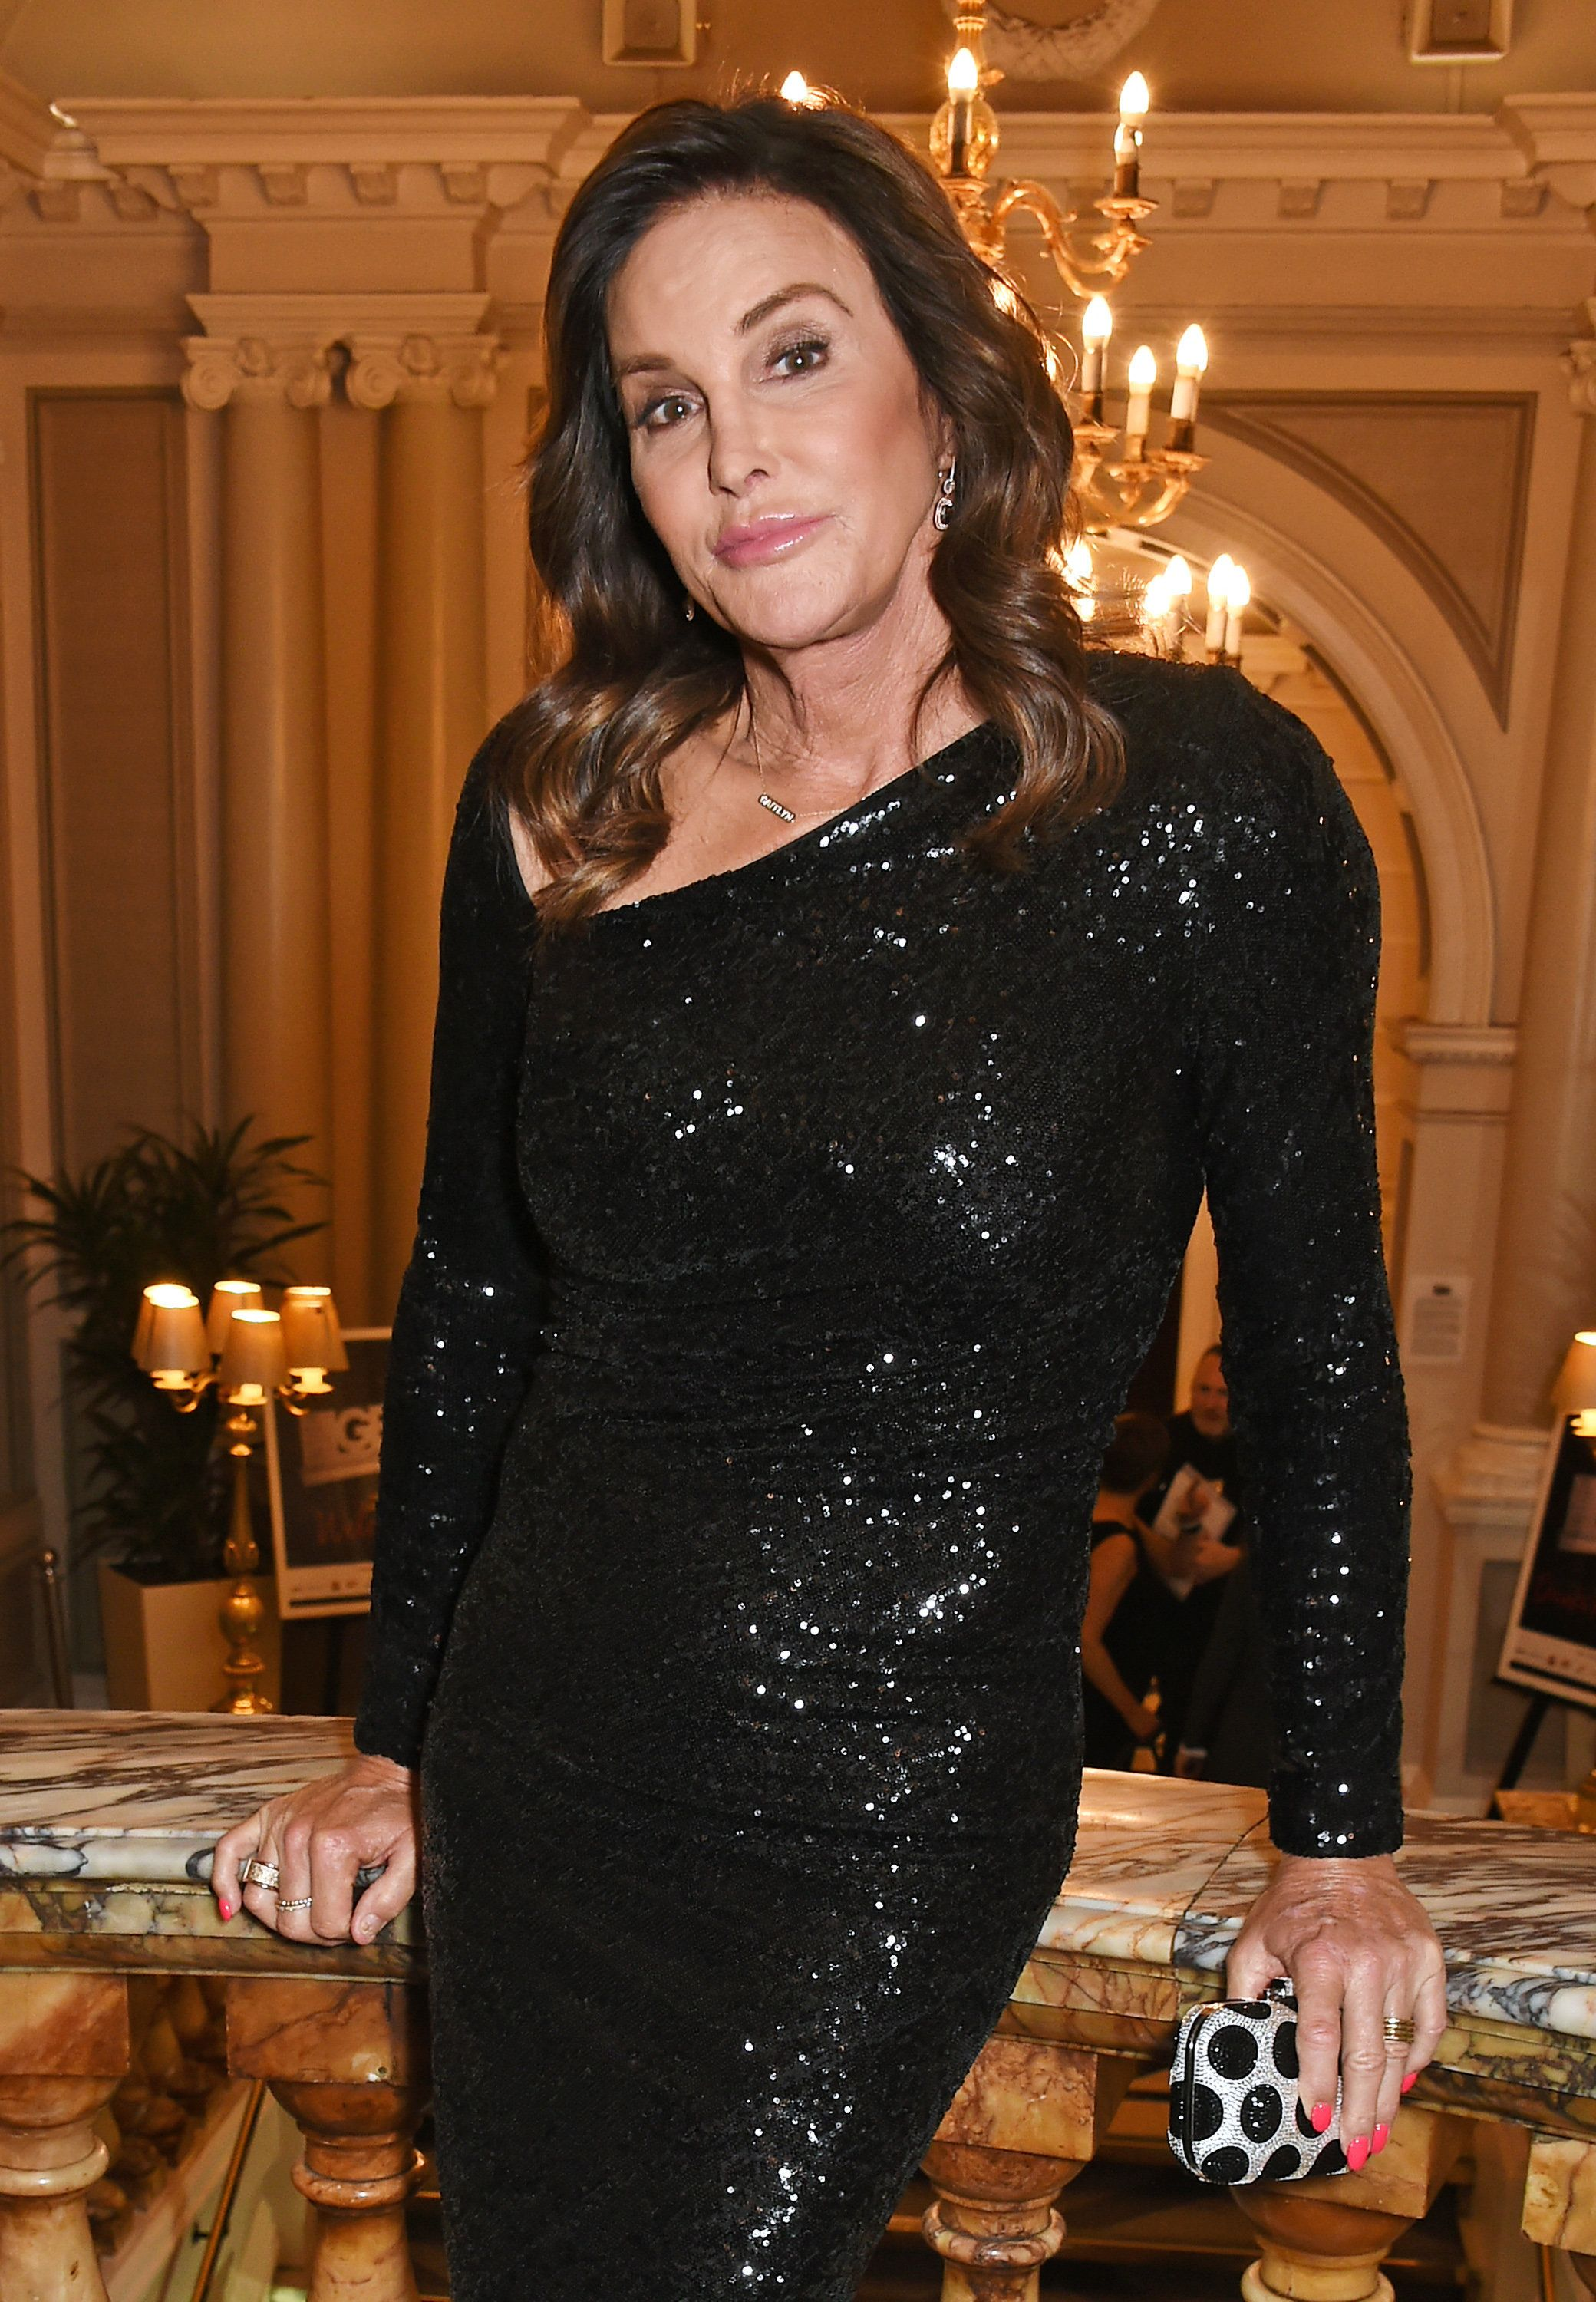 Is Caitlyn Jenner About To Become One Of The Highest Paid 'Celebrity Big Brother' Stars